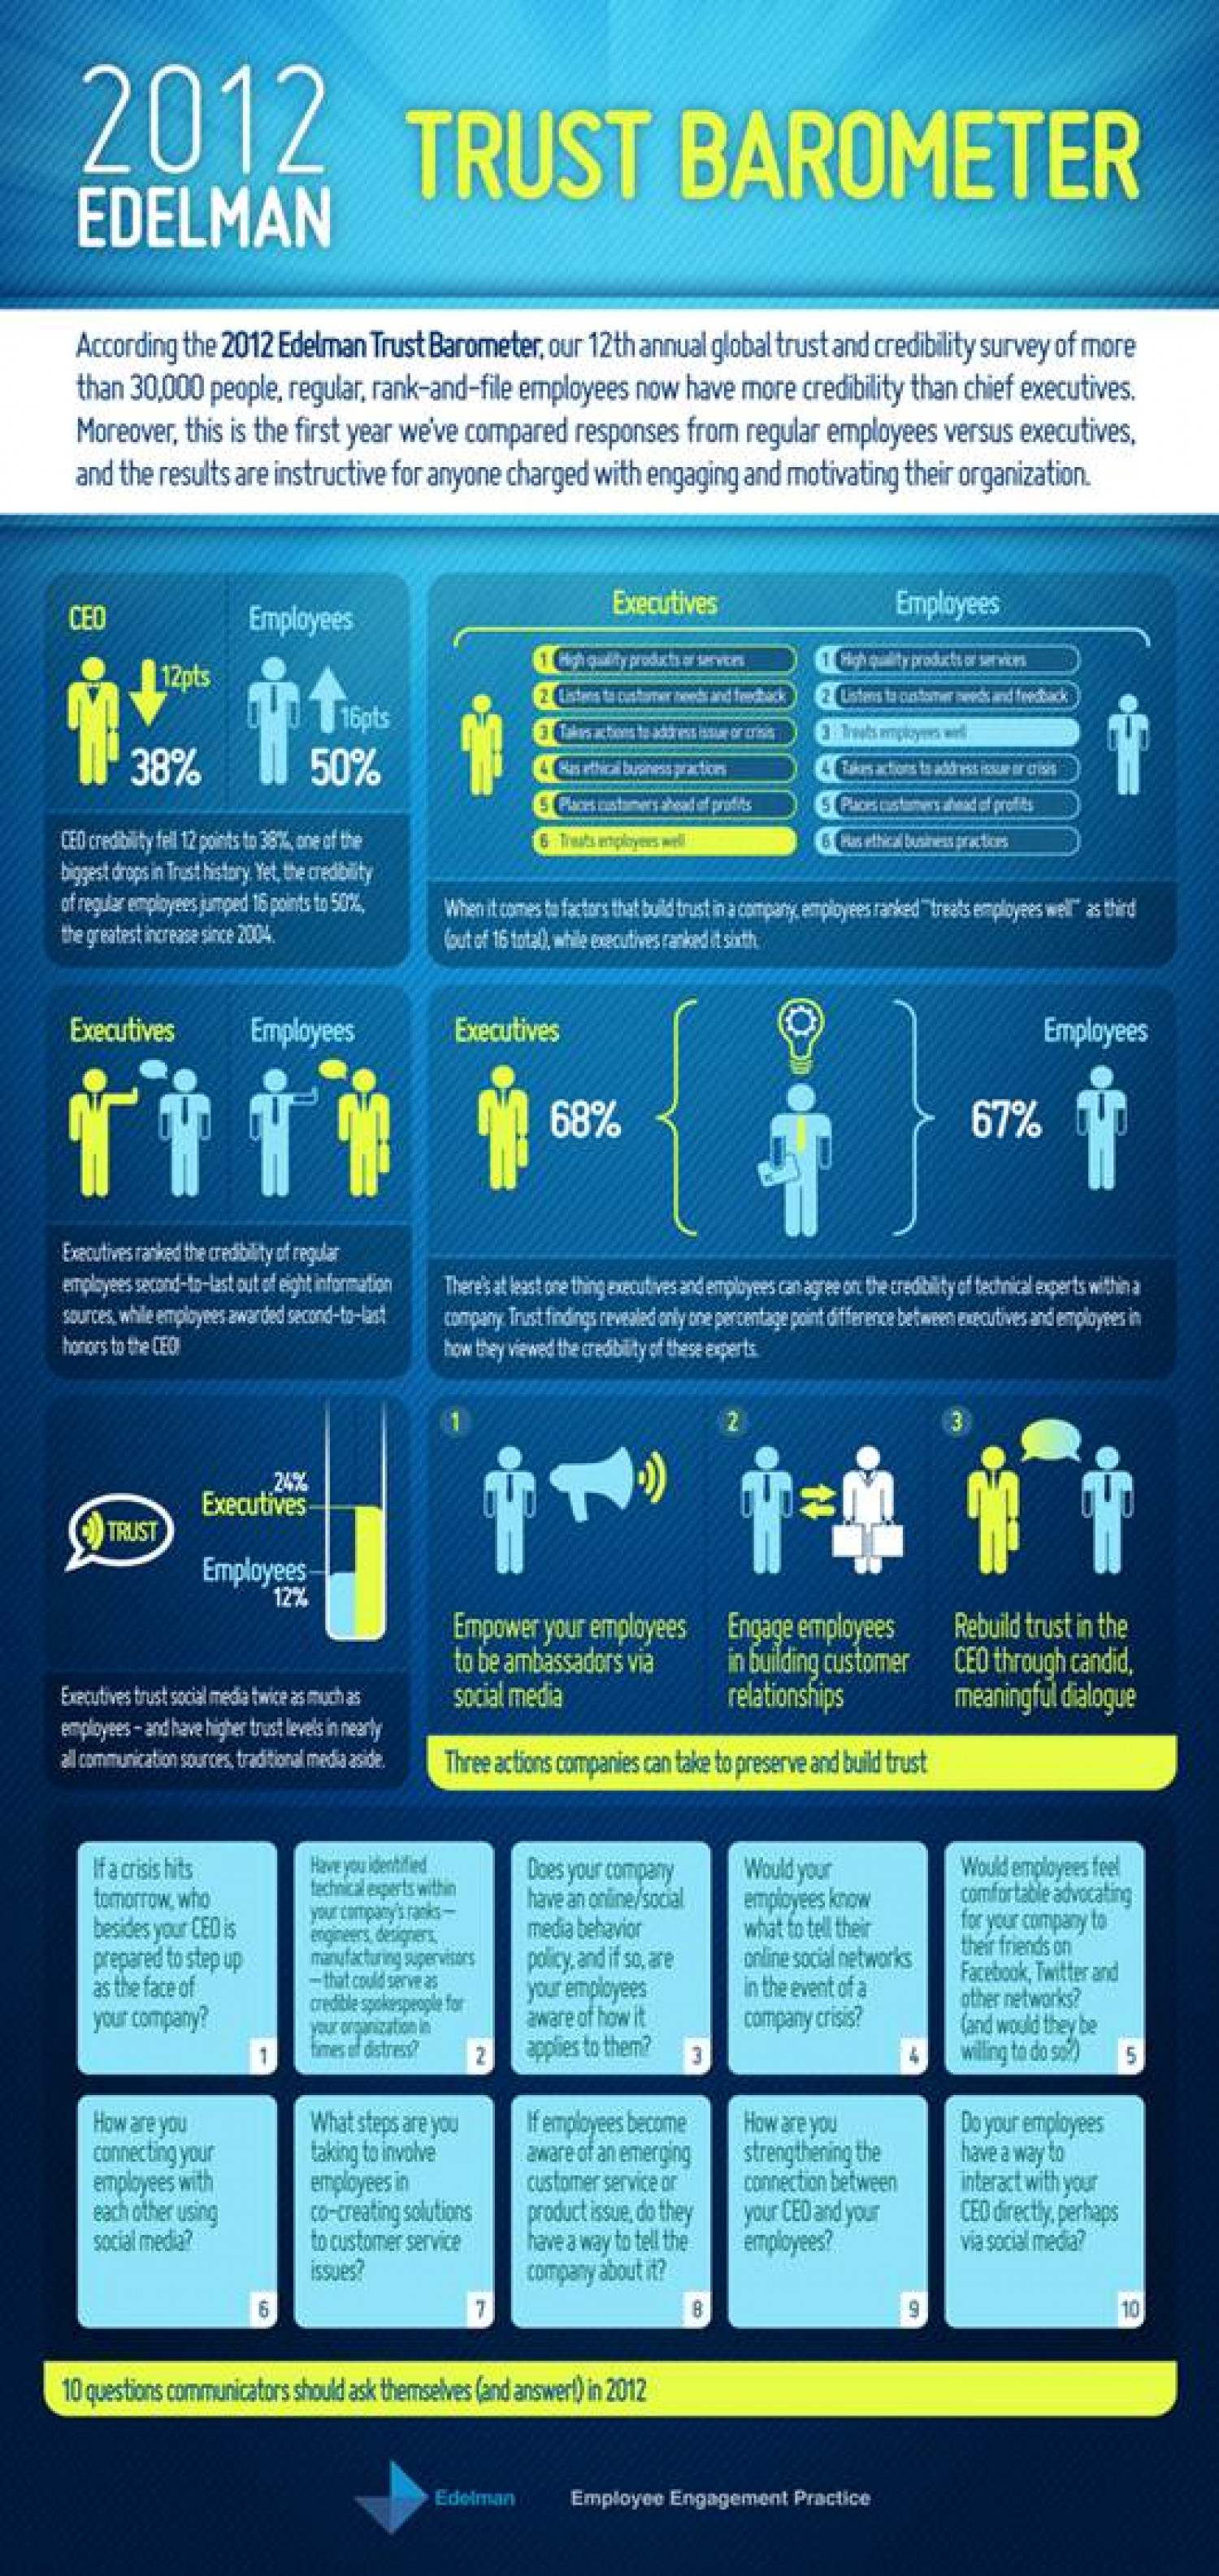 2012 Edelman Trust Barometer: Focus on Employees Infographic